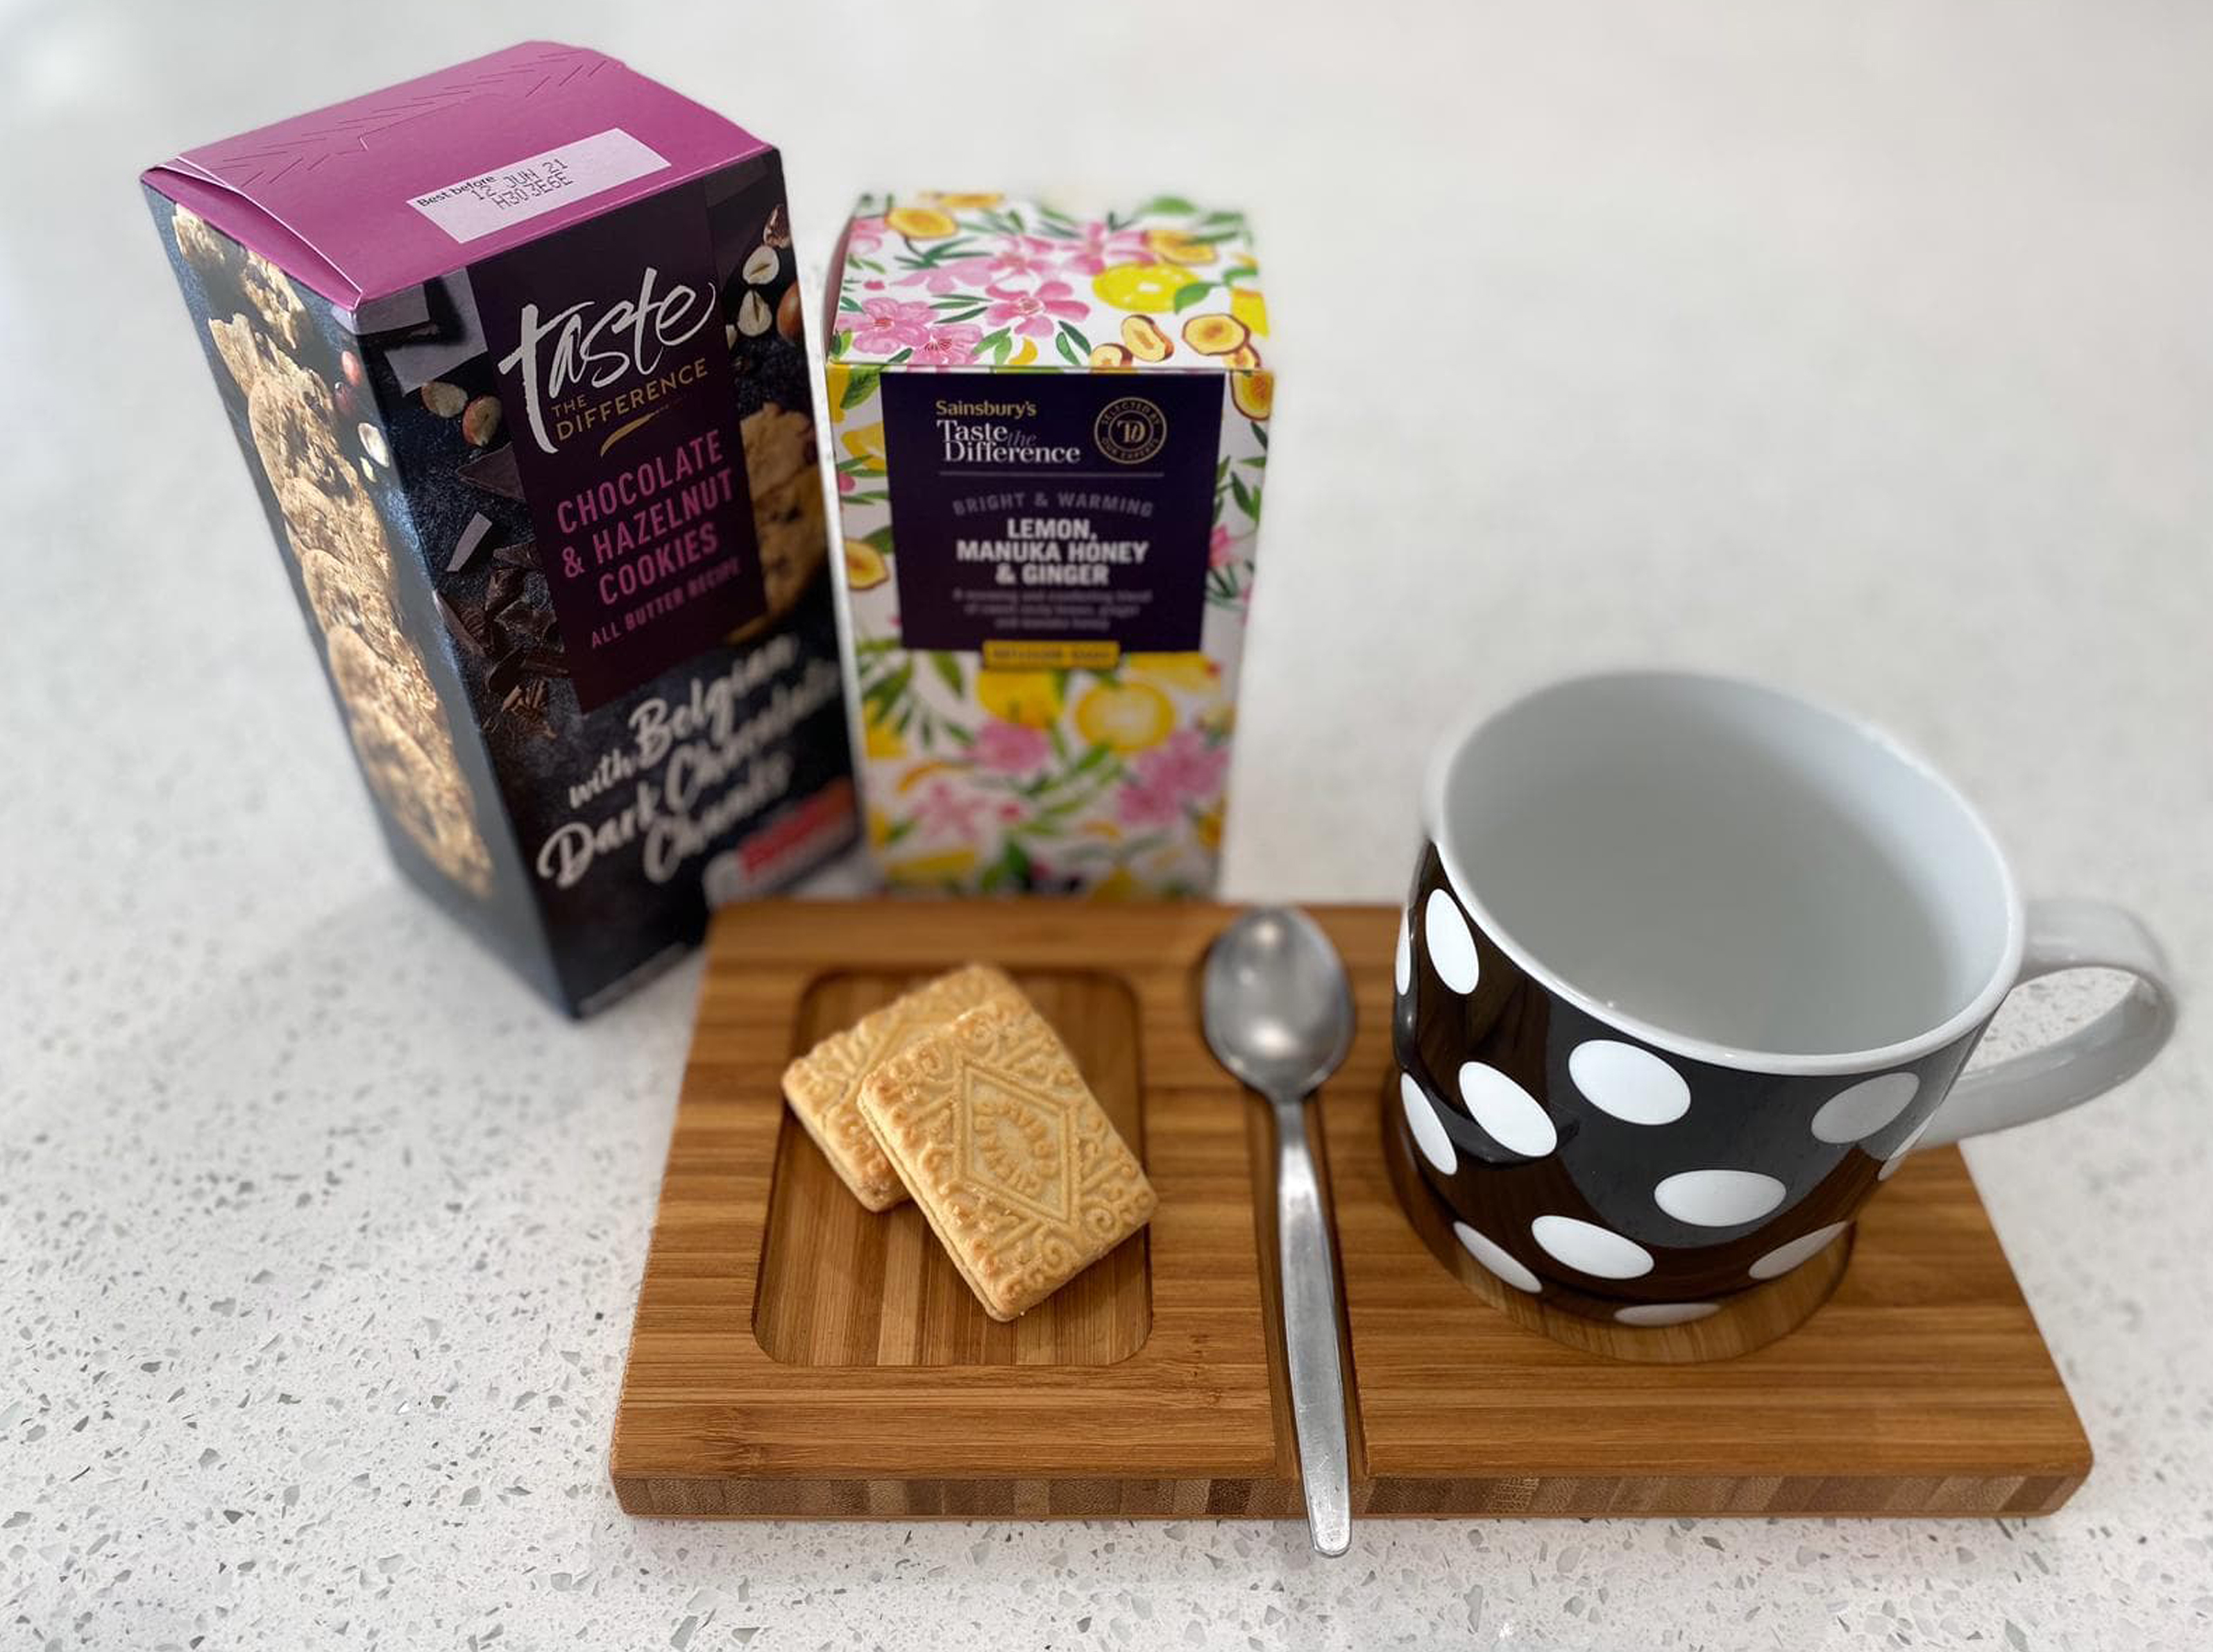 Tea, Biscuits, and a Serving Board